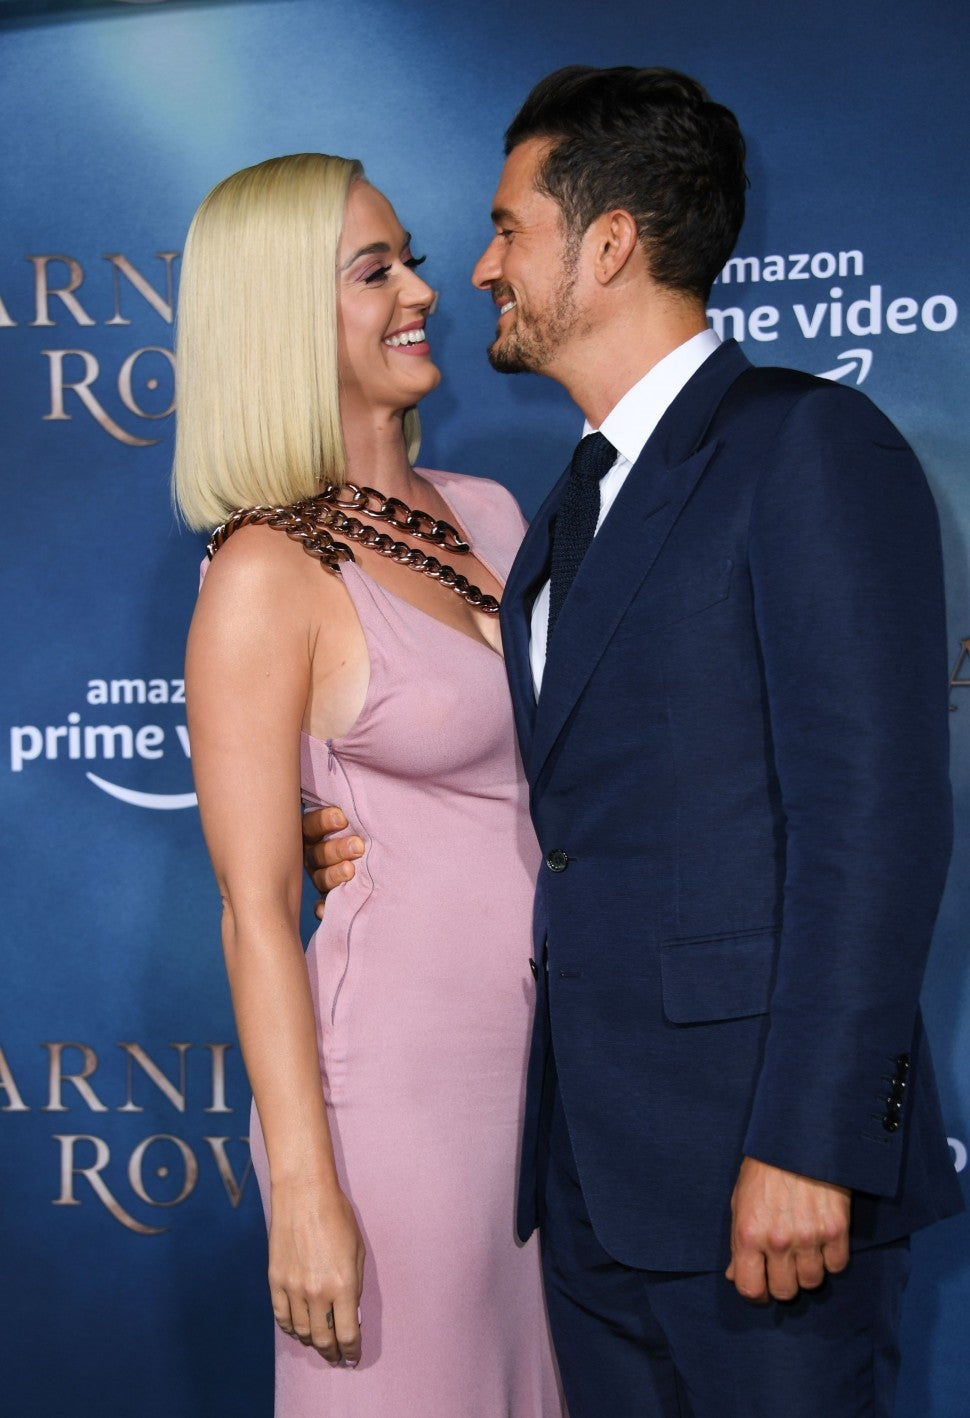 katy perry and orlando bloom at carnival row premiere